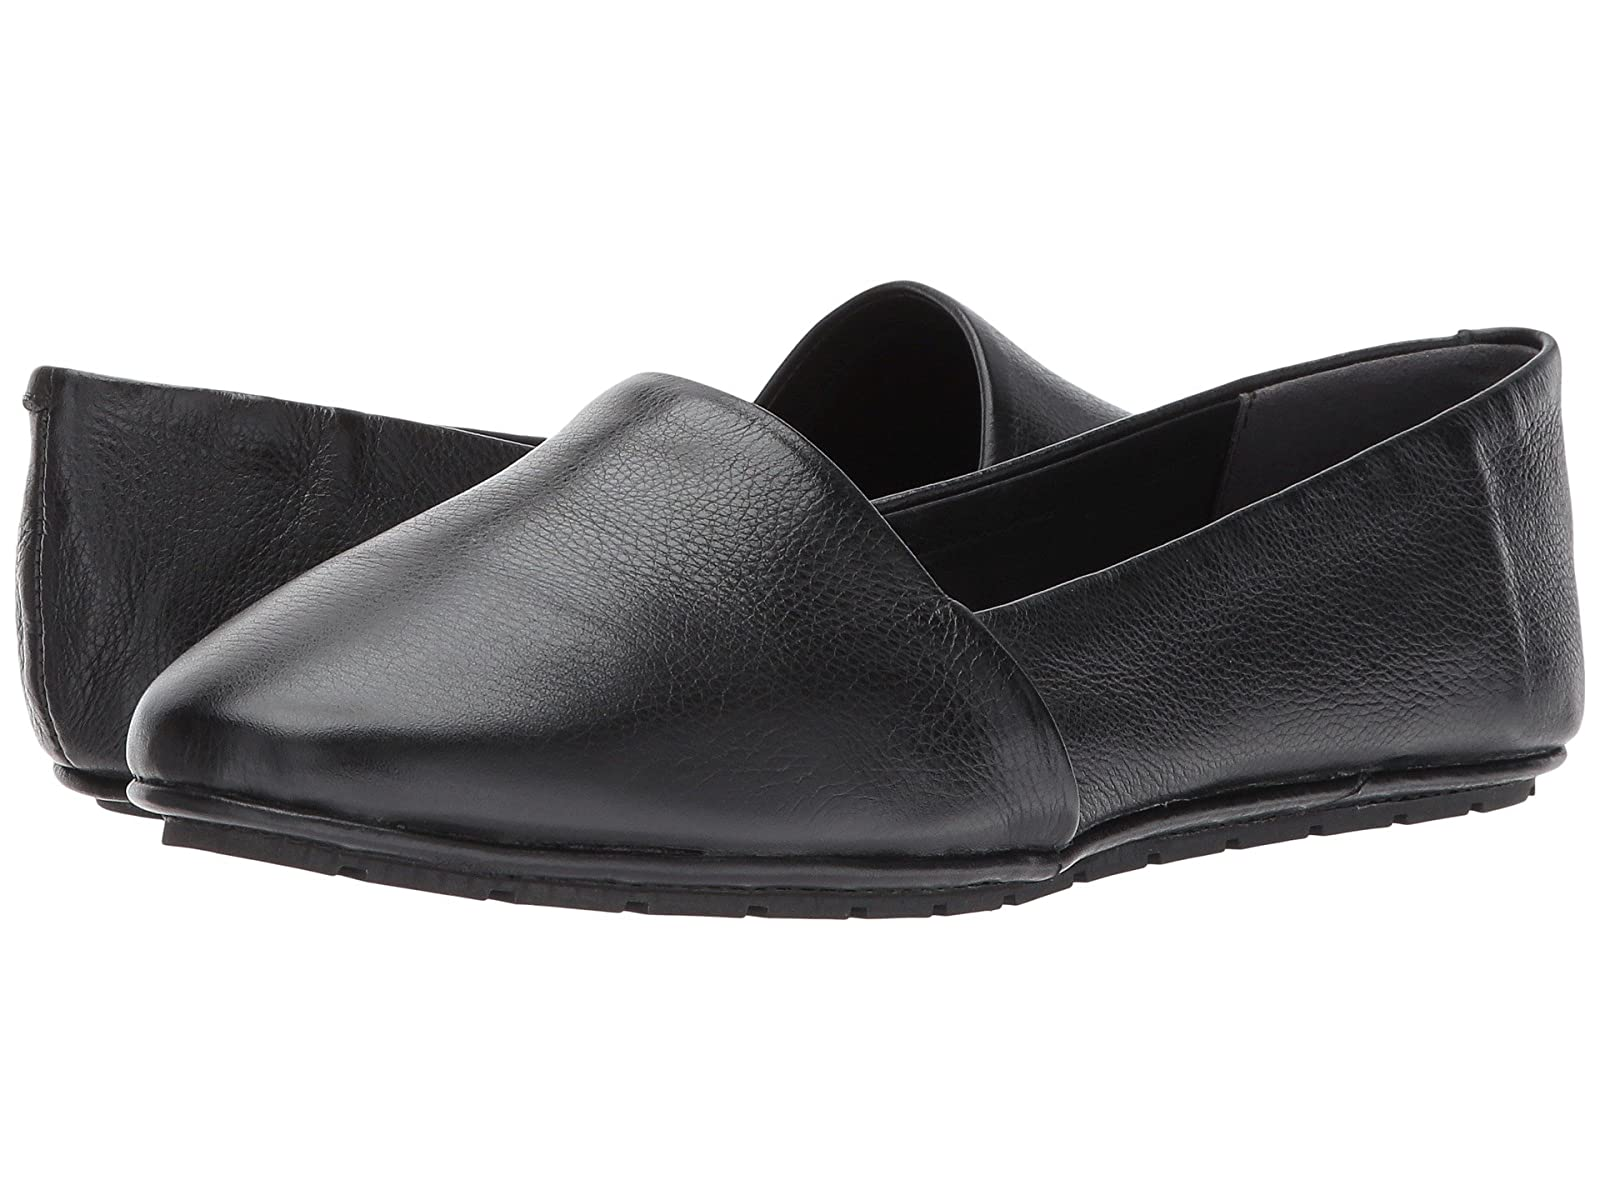 Kenneth Cole New York JordynCheap and distinctive eye-catching shoes